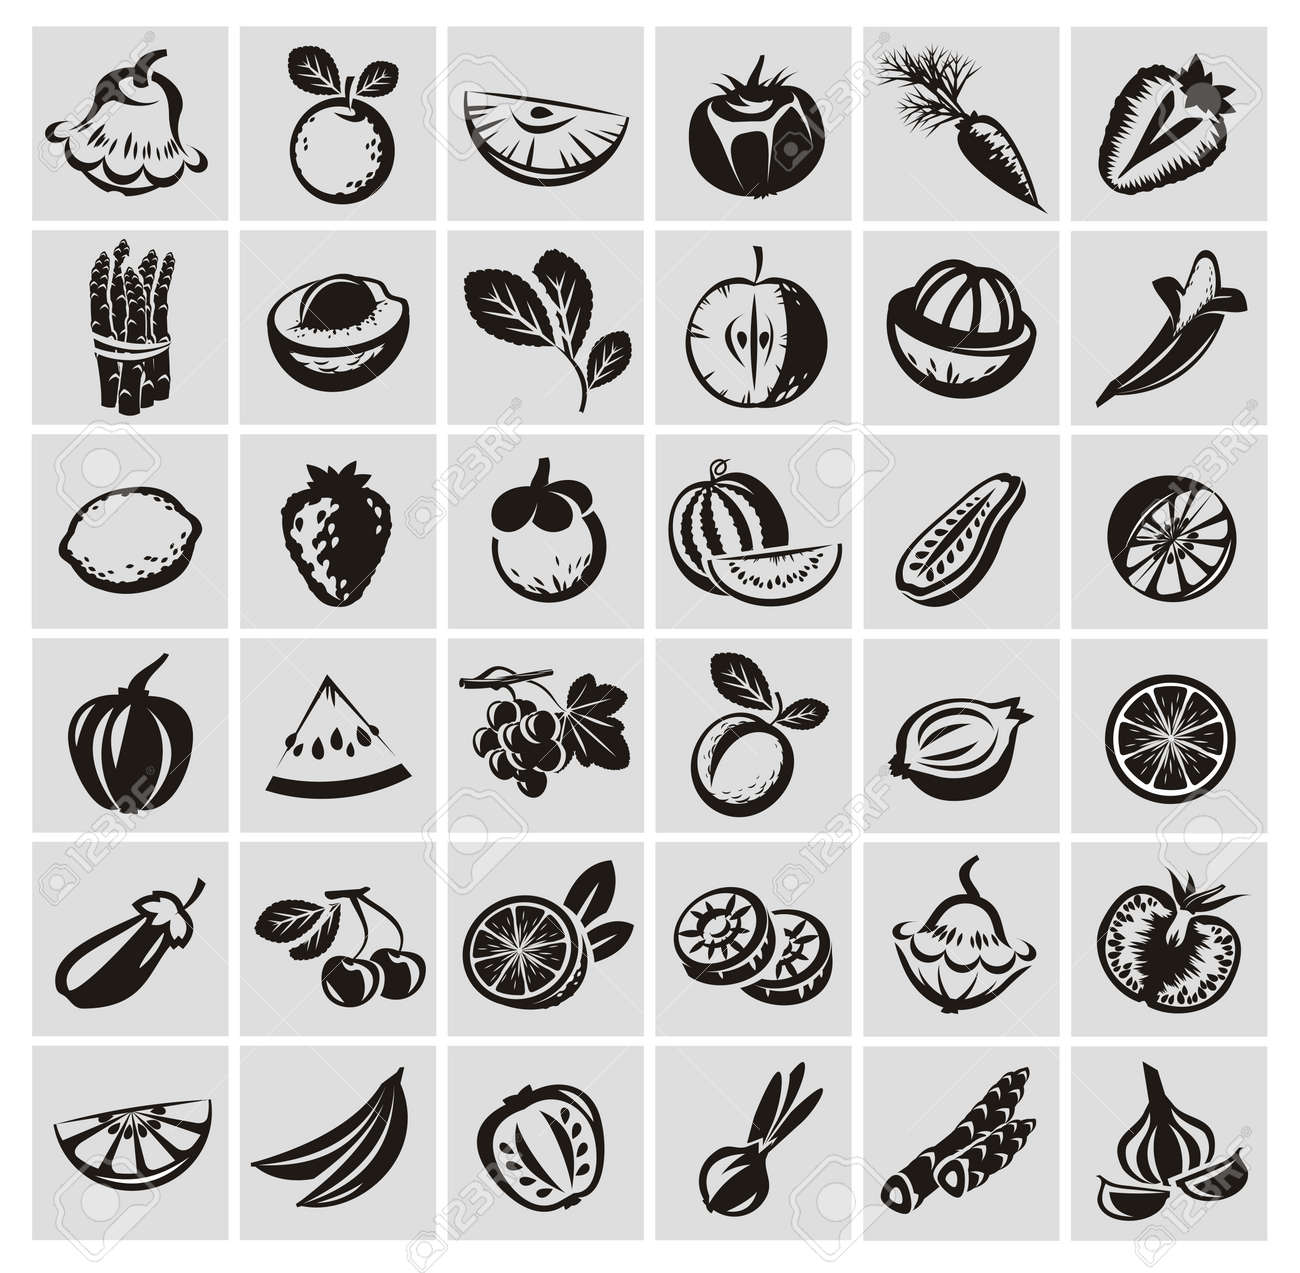 Vegetables and fruits icons - 22261140